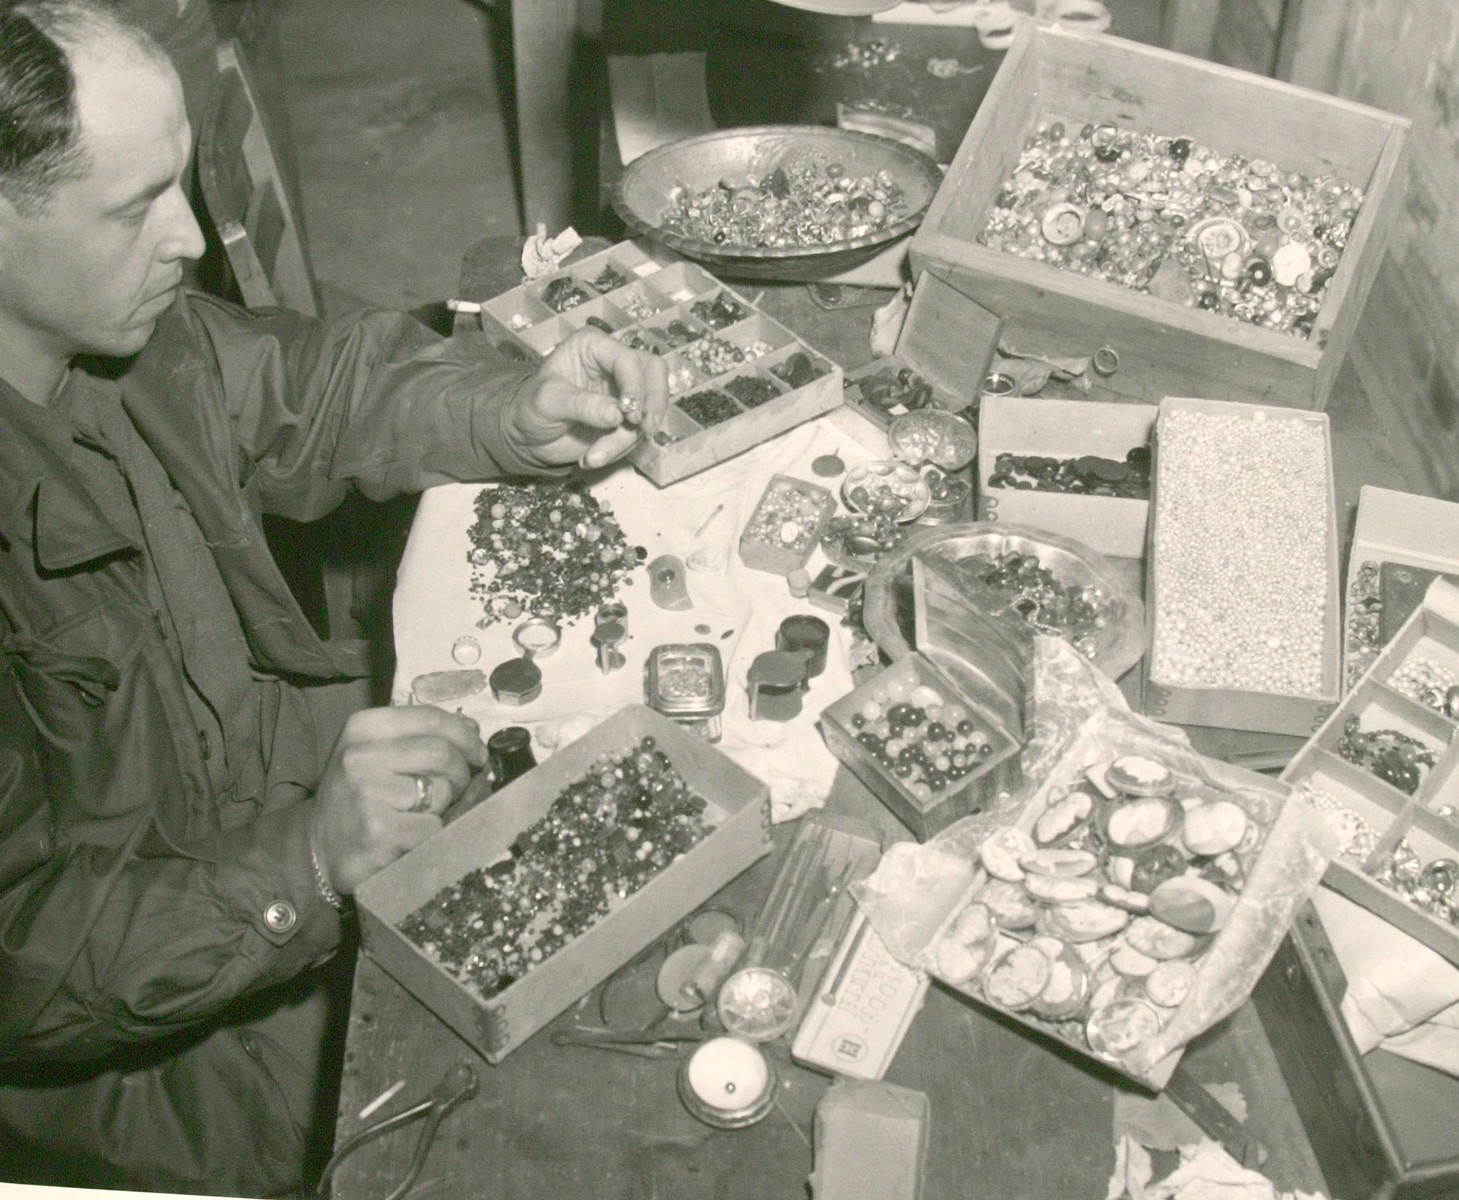 "An American soldier views an array of stones and other valuables confiscated from prisoners in the Buchenwald concentration camp and recovered by U.S. troops after the liberation of the camp.  Original caption reads: ""German loot from Buchenwald atrocity victims.  These stones are a few of the thousands of valuables the Germans removed from their victims in the Buchenwald Concentration Camp near Weimar, Germany.  The loot was discovered by the First U.S. Army troops in a cave adjoining the camp."""